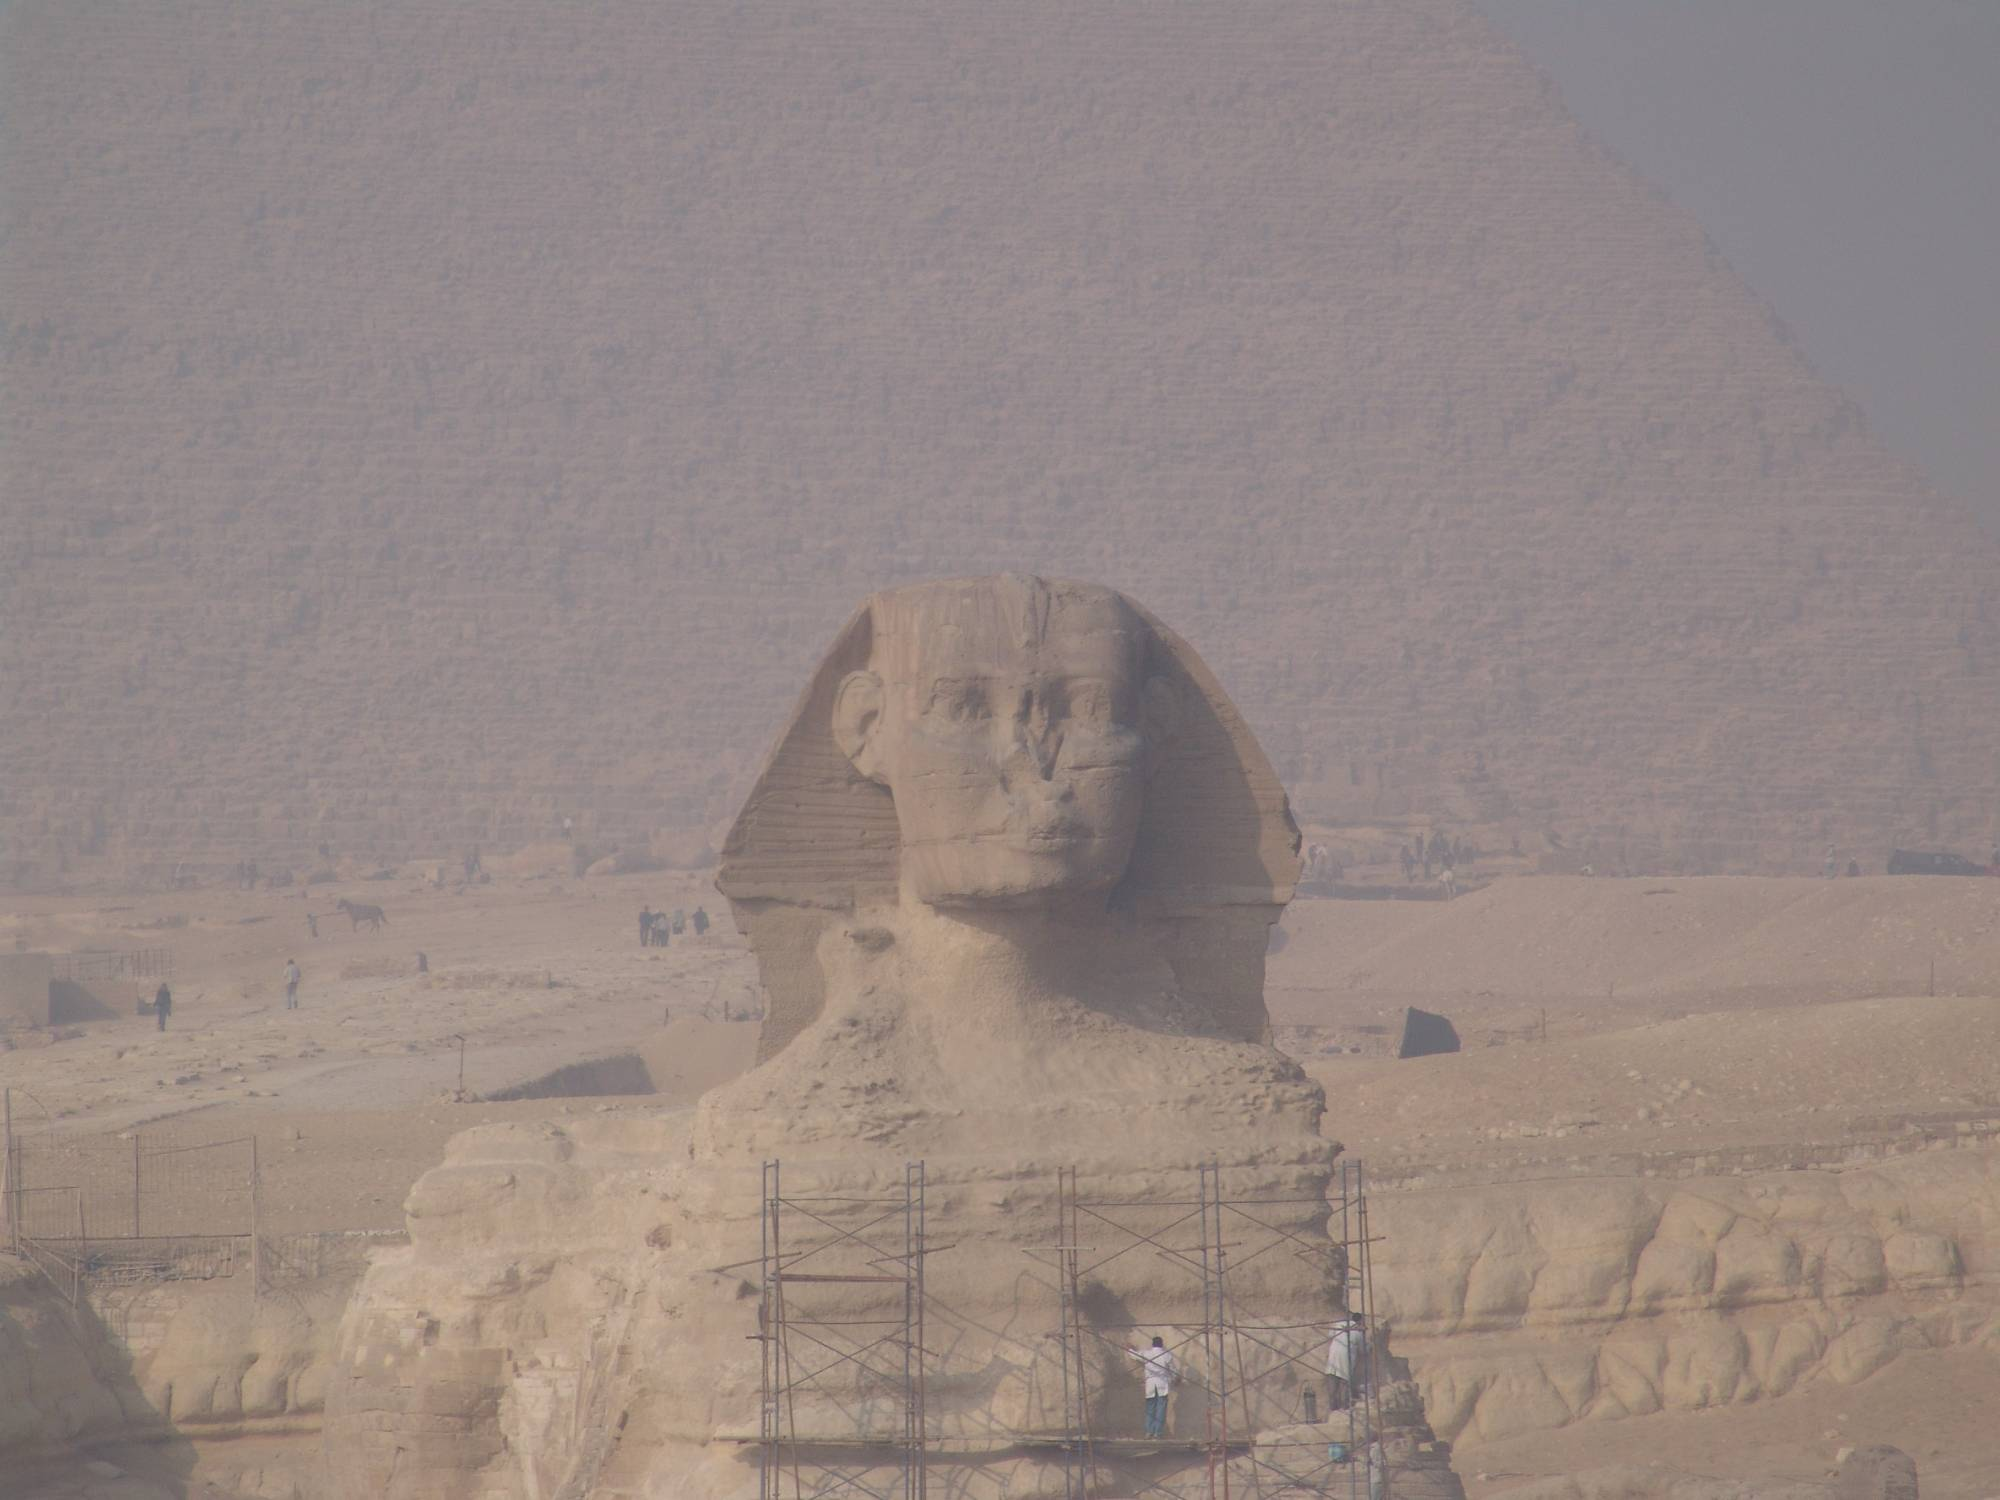 Egypt - Sphinx, Giza pyramids, Cairo photo